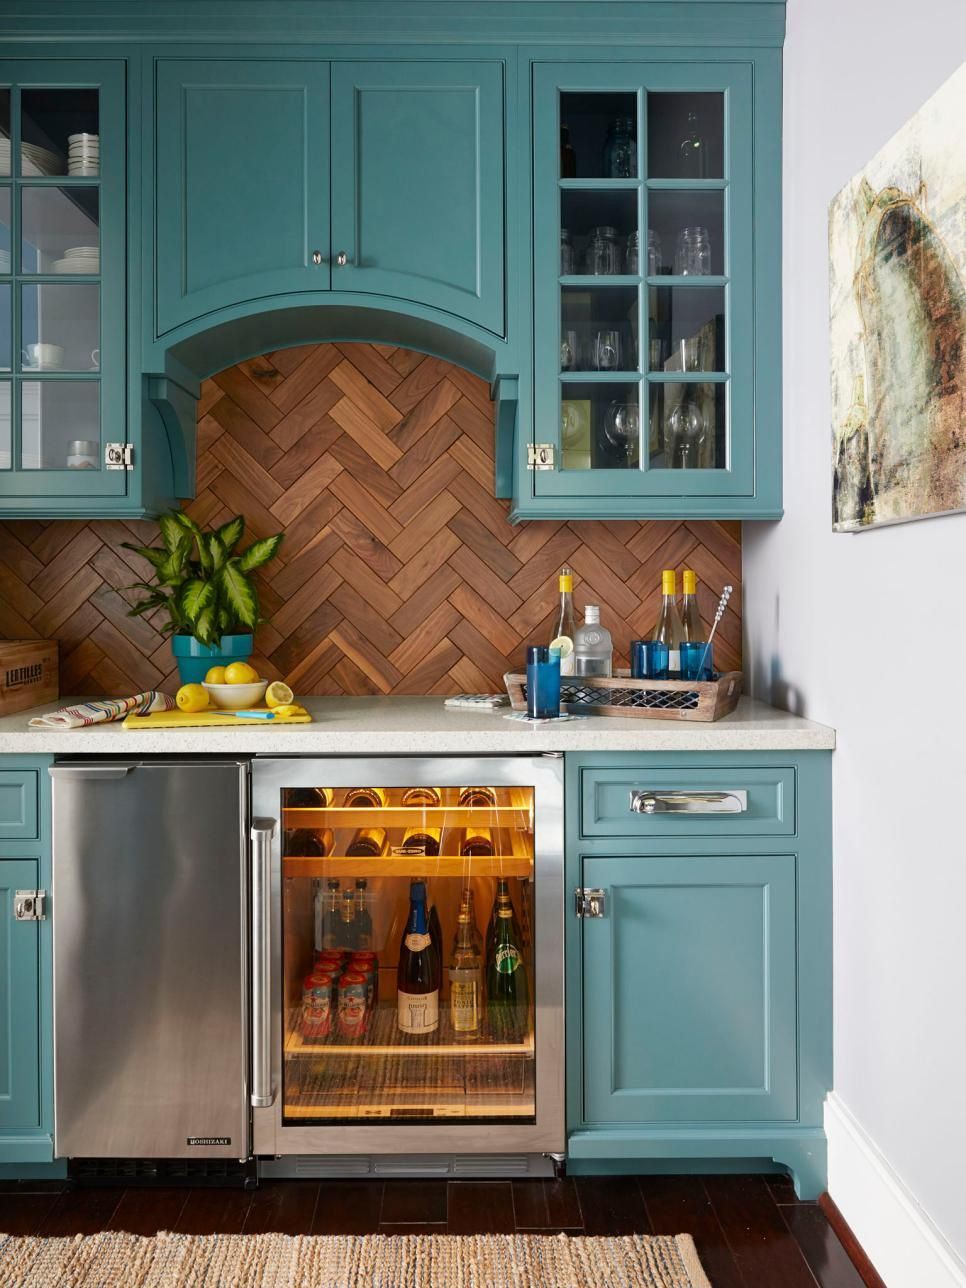 Painting your cabinets a fun shade of teal might feel like a big